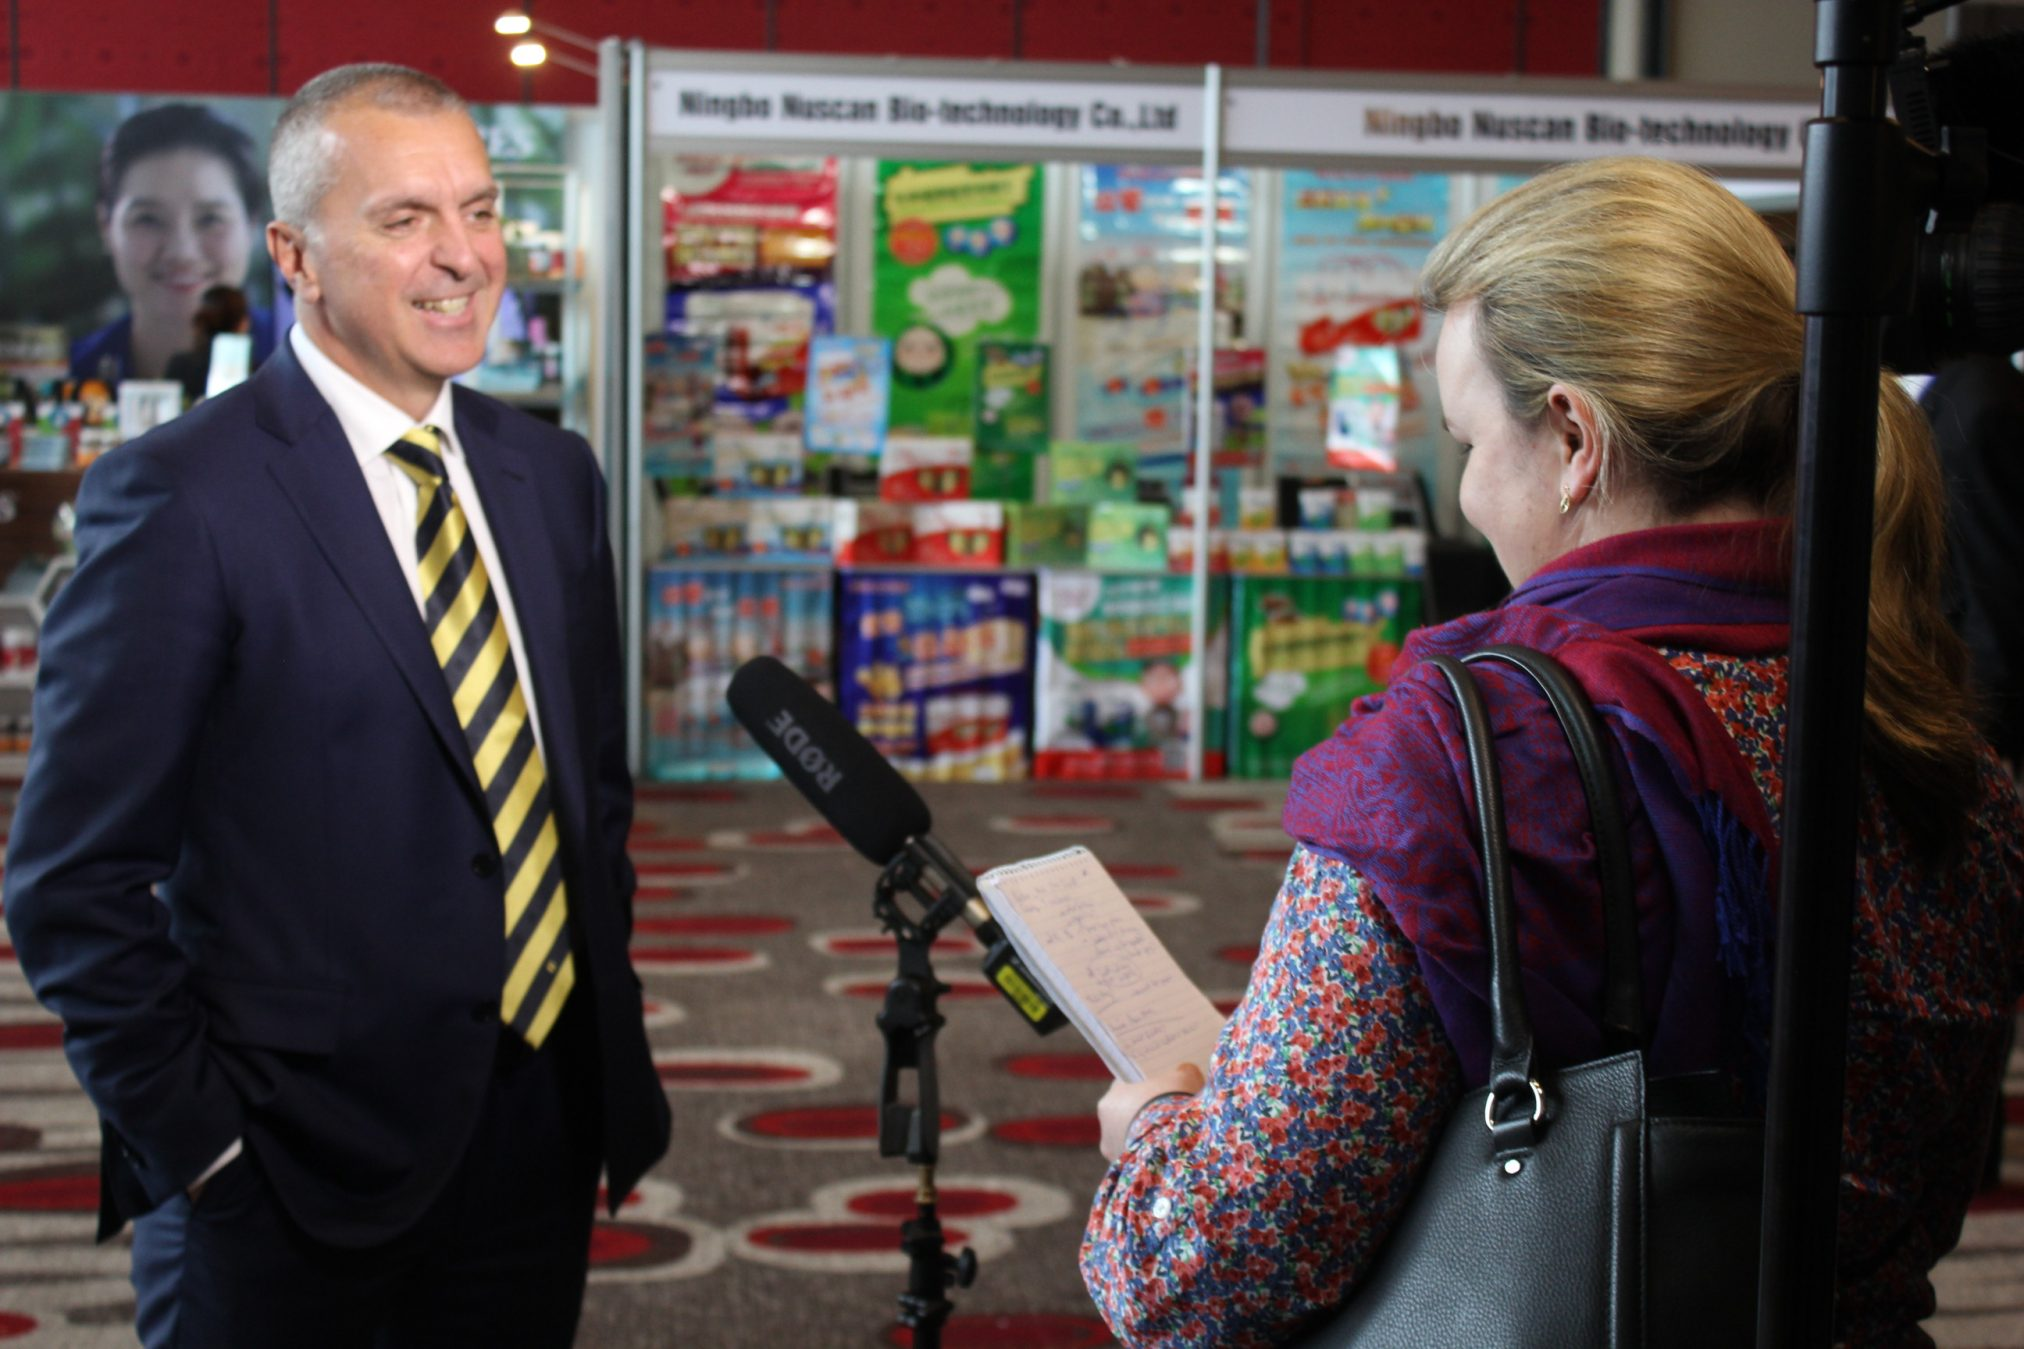 George Tambassis interviewed by ABC TV News at the Expo